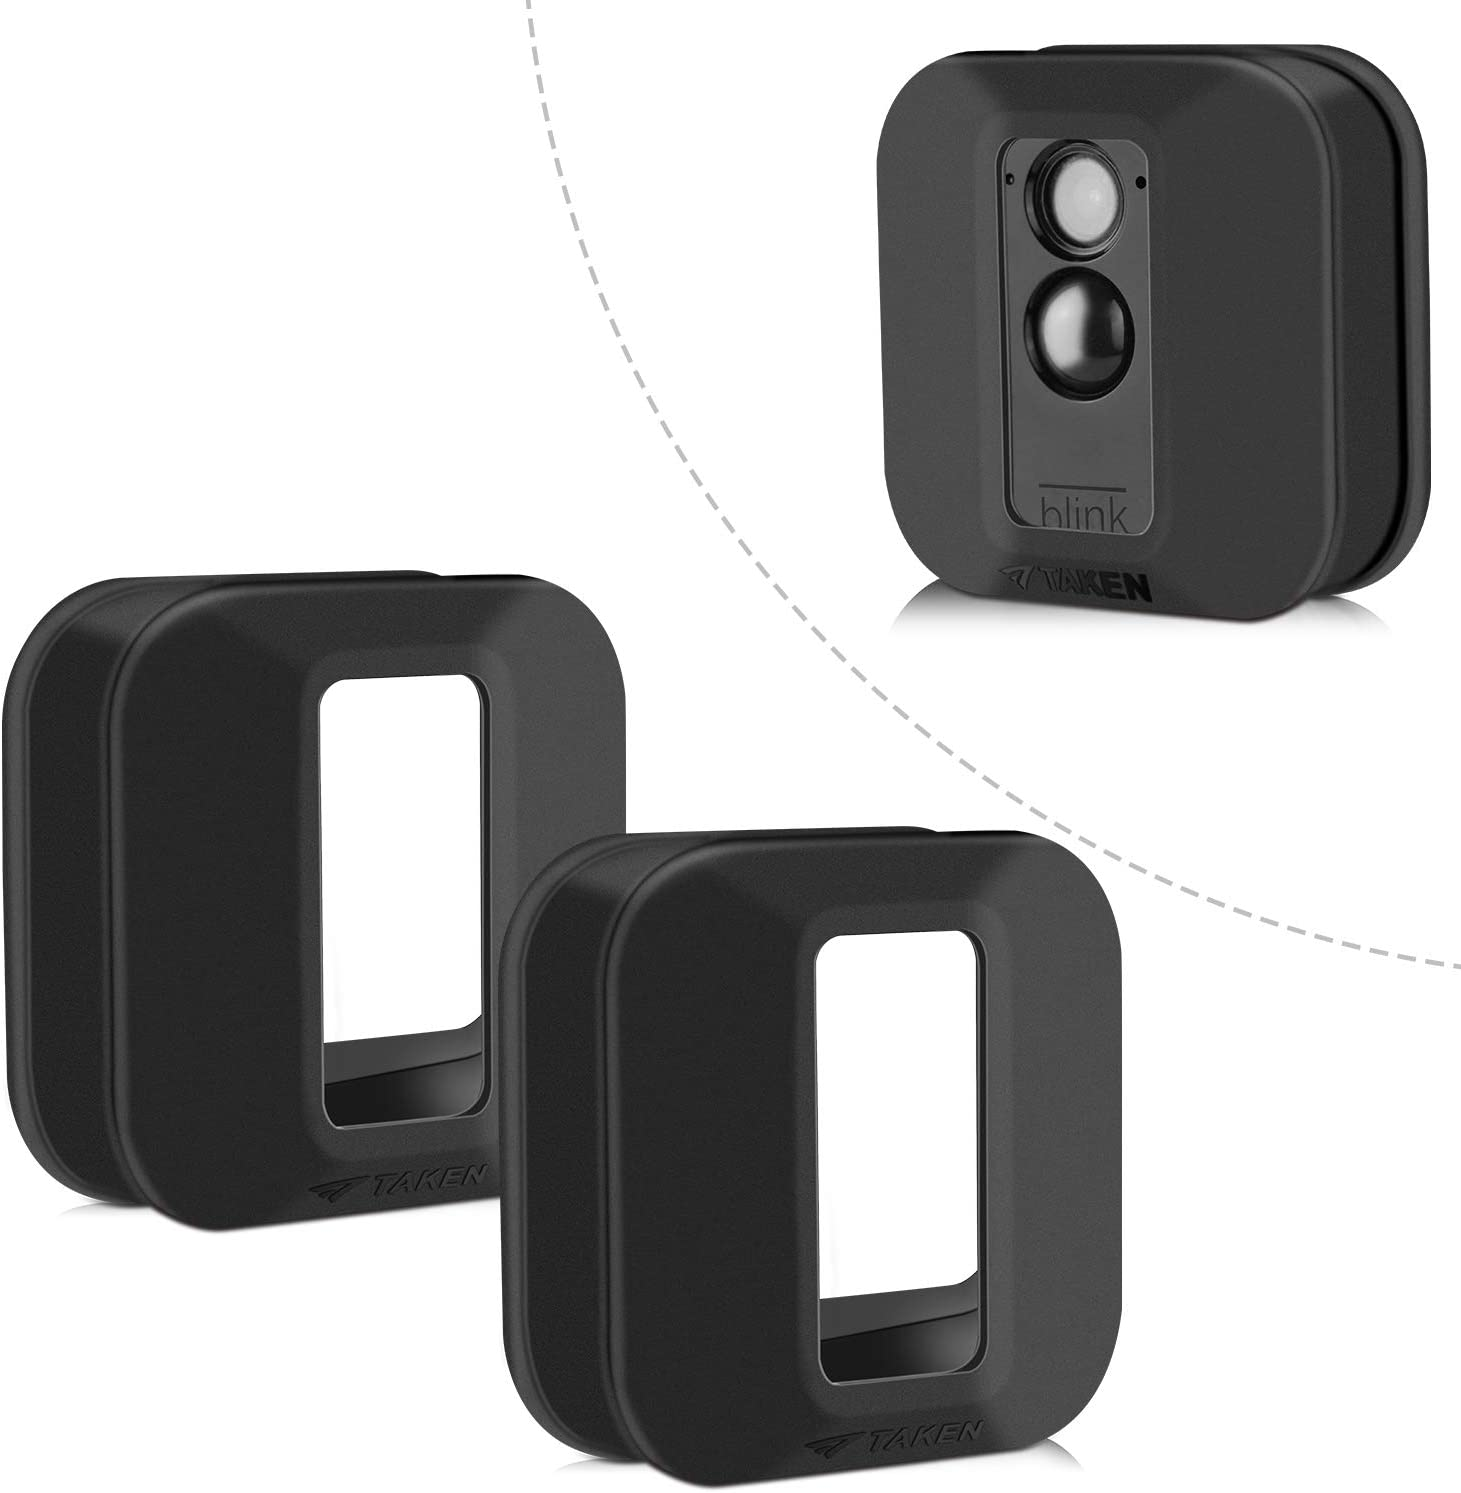 Blink XT Case, Silicone Skin for Blink XT Outdoor Home Security Camera UV and Water-Resistant, Indoor Outdoor Blink XT Protecting Case, 2 Pack, Black